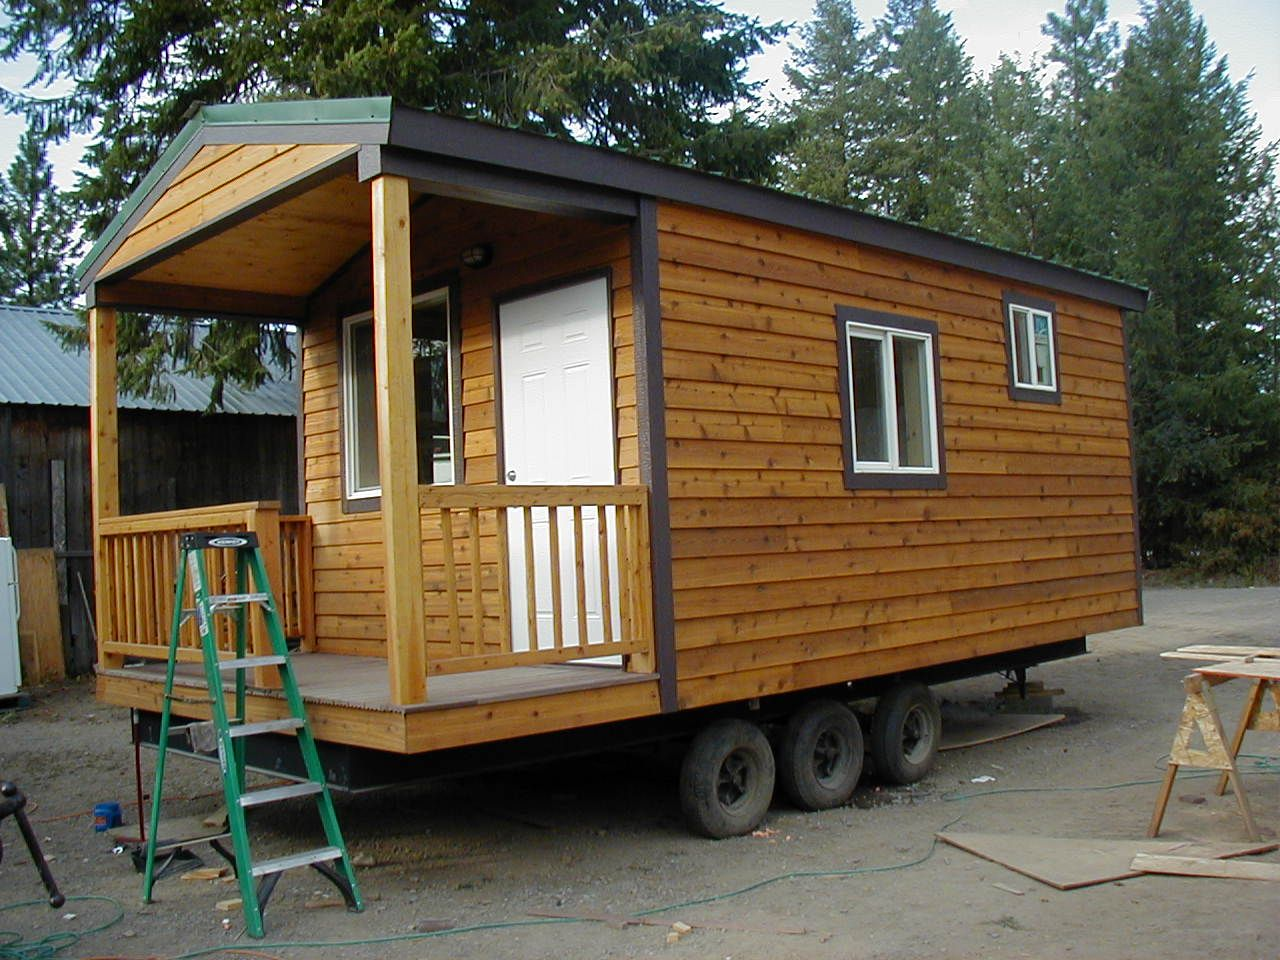 Assisted Living Cabin: Tiny Portable Cedar Cabins - Tiny